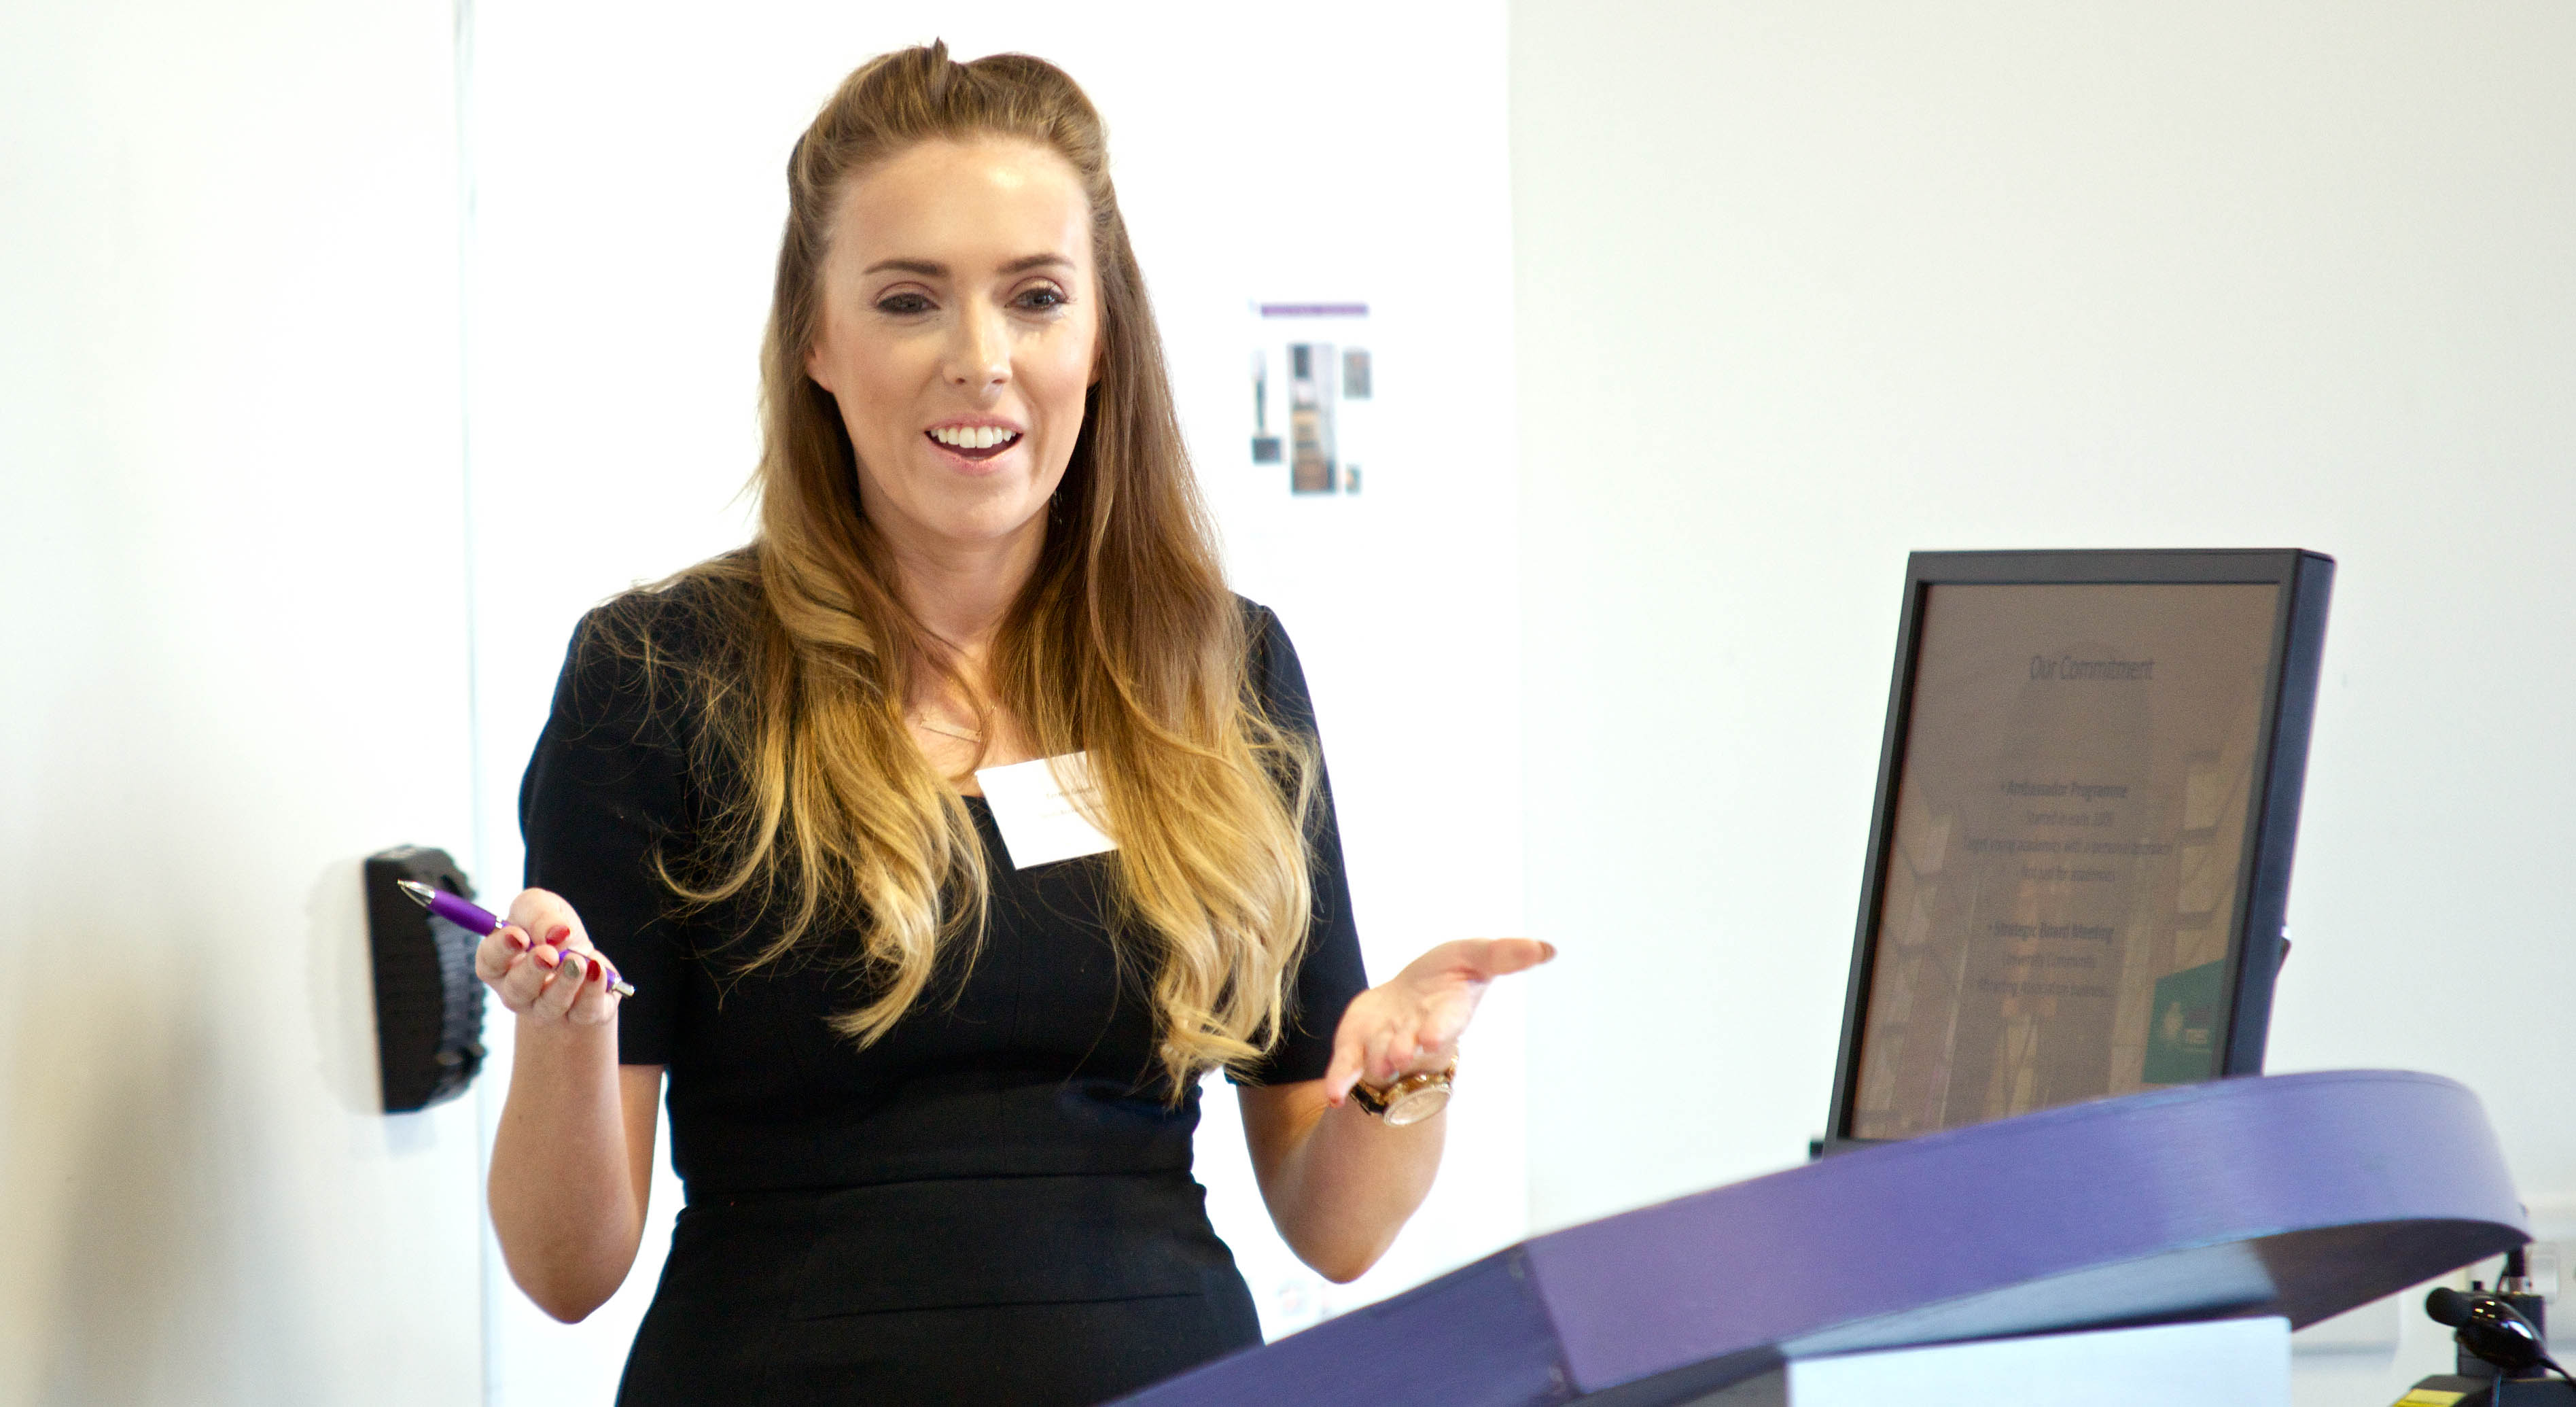 Emma Gough, Well Met Conference Host